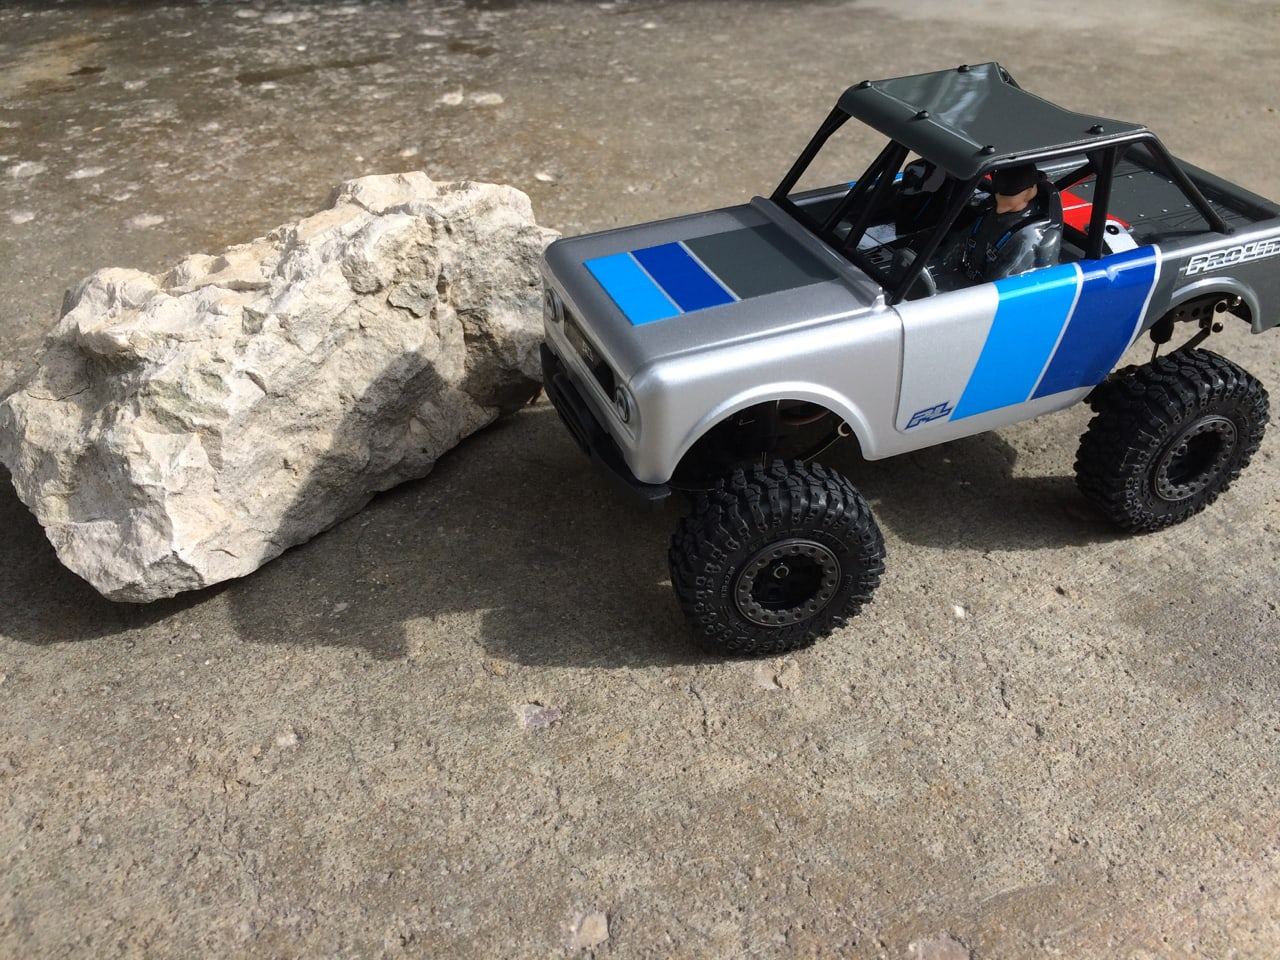 Reviewing Pro-Line's Ambush 4×4 1/25-scale Micro Crawler